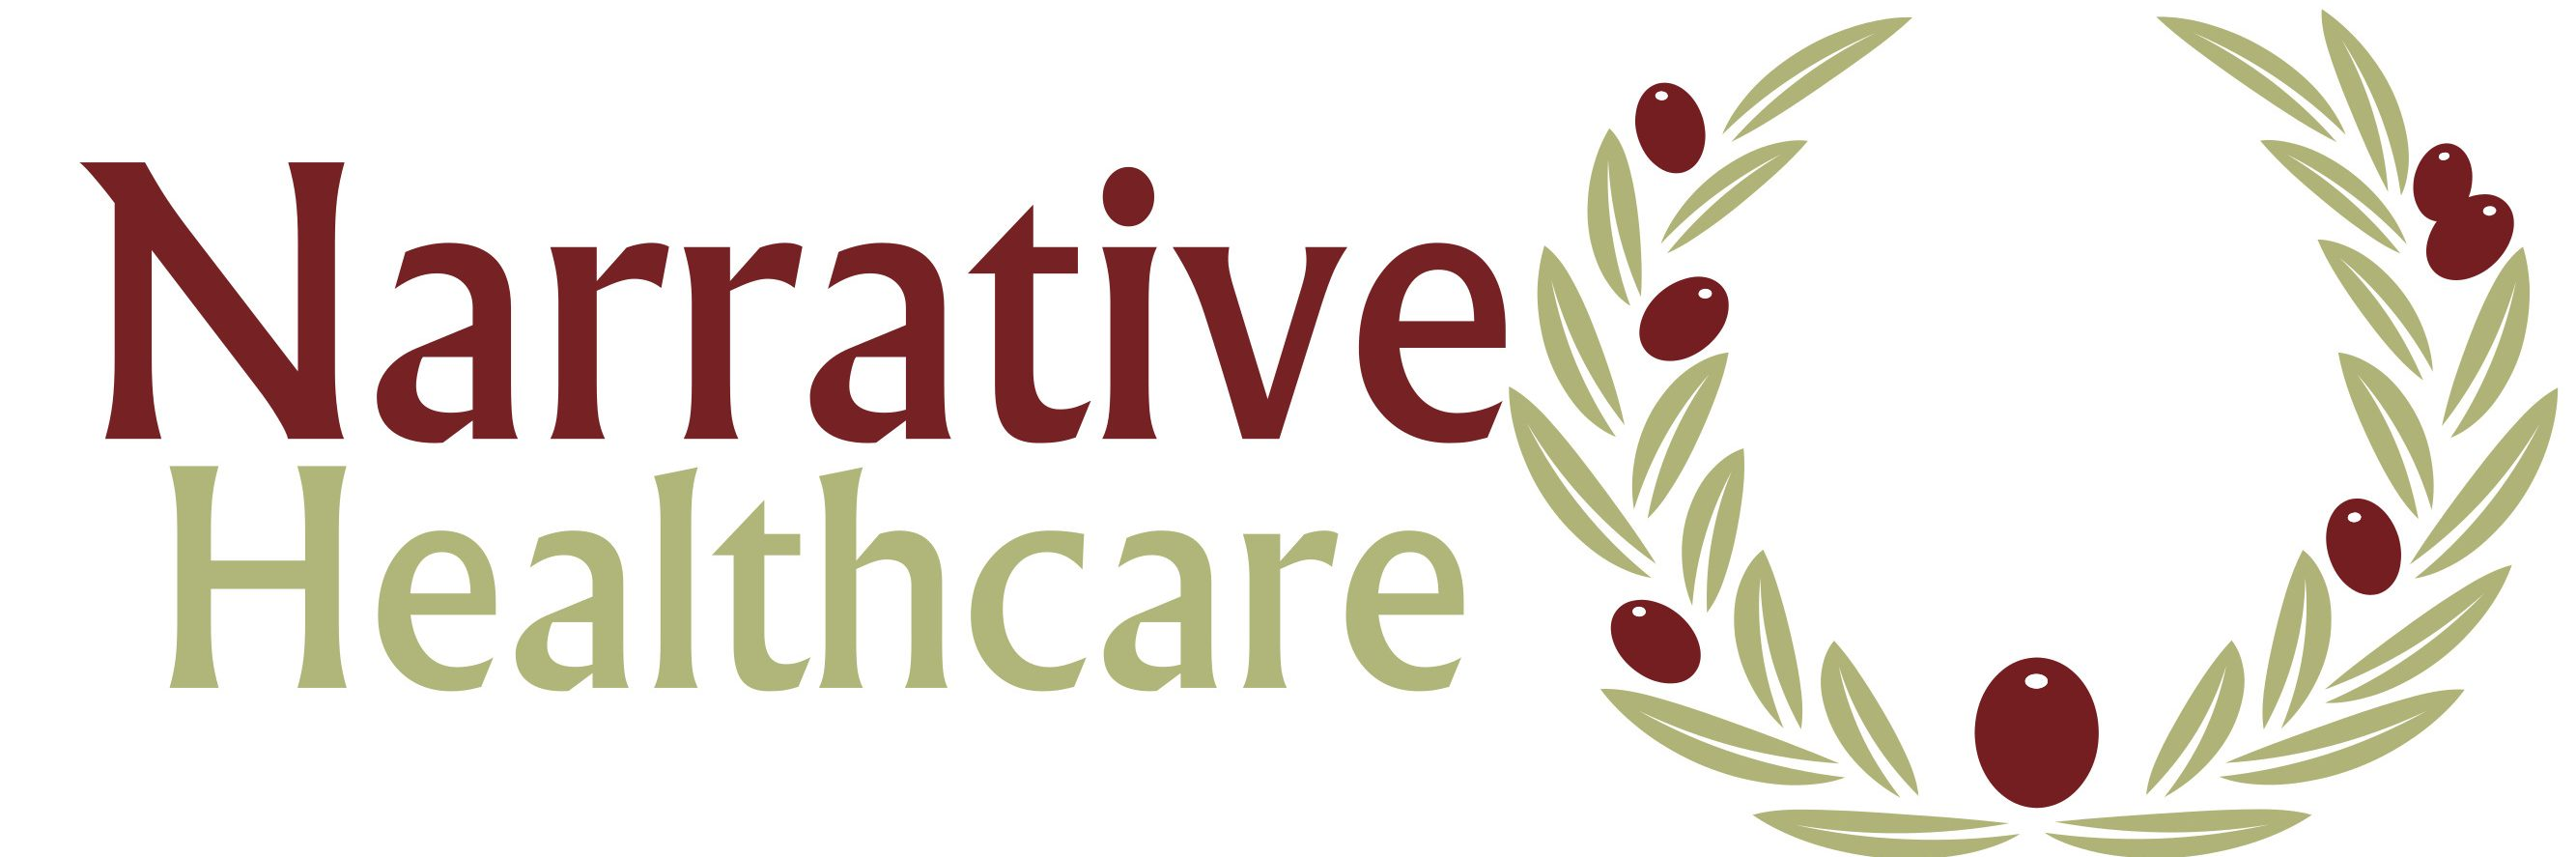 Narrative Healthcare at Lenoir-Rhyne University